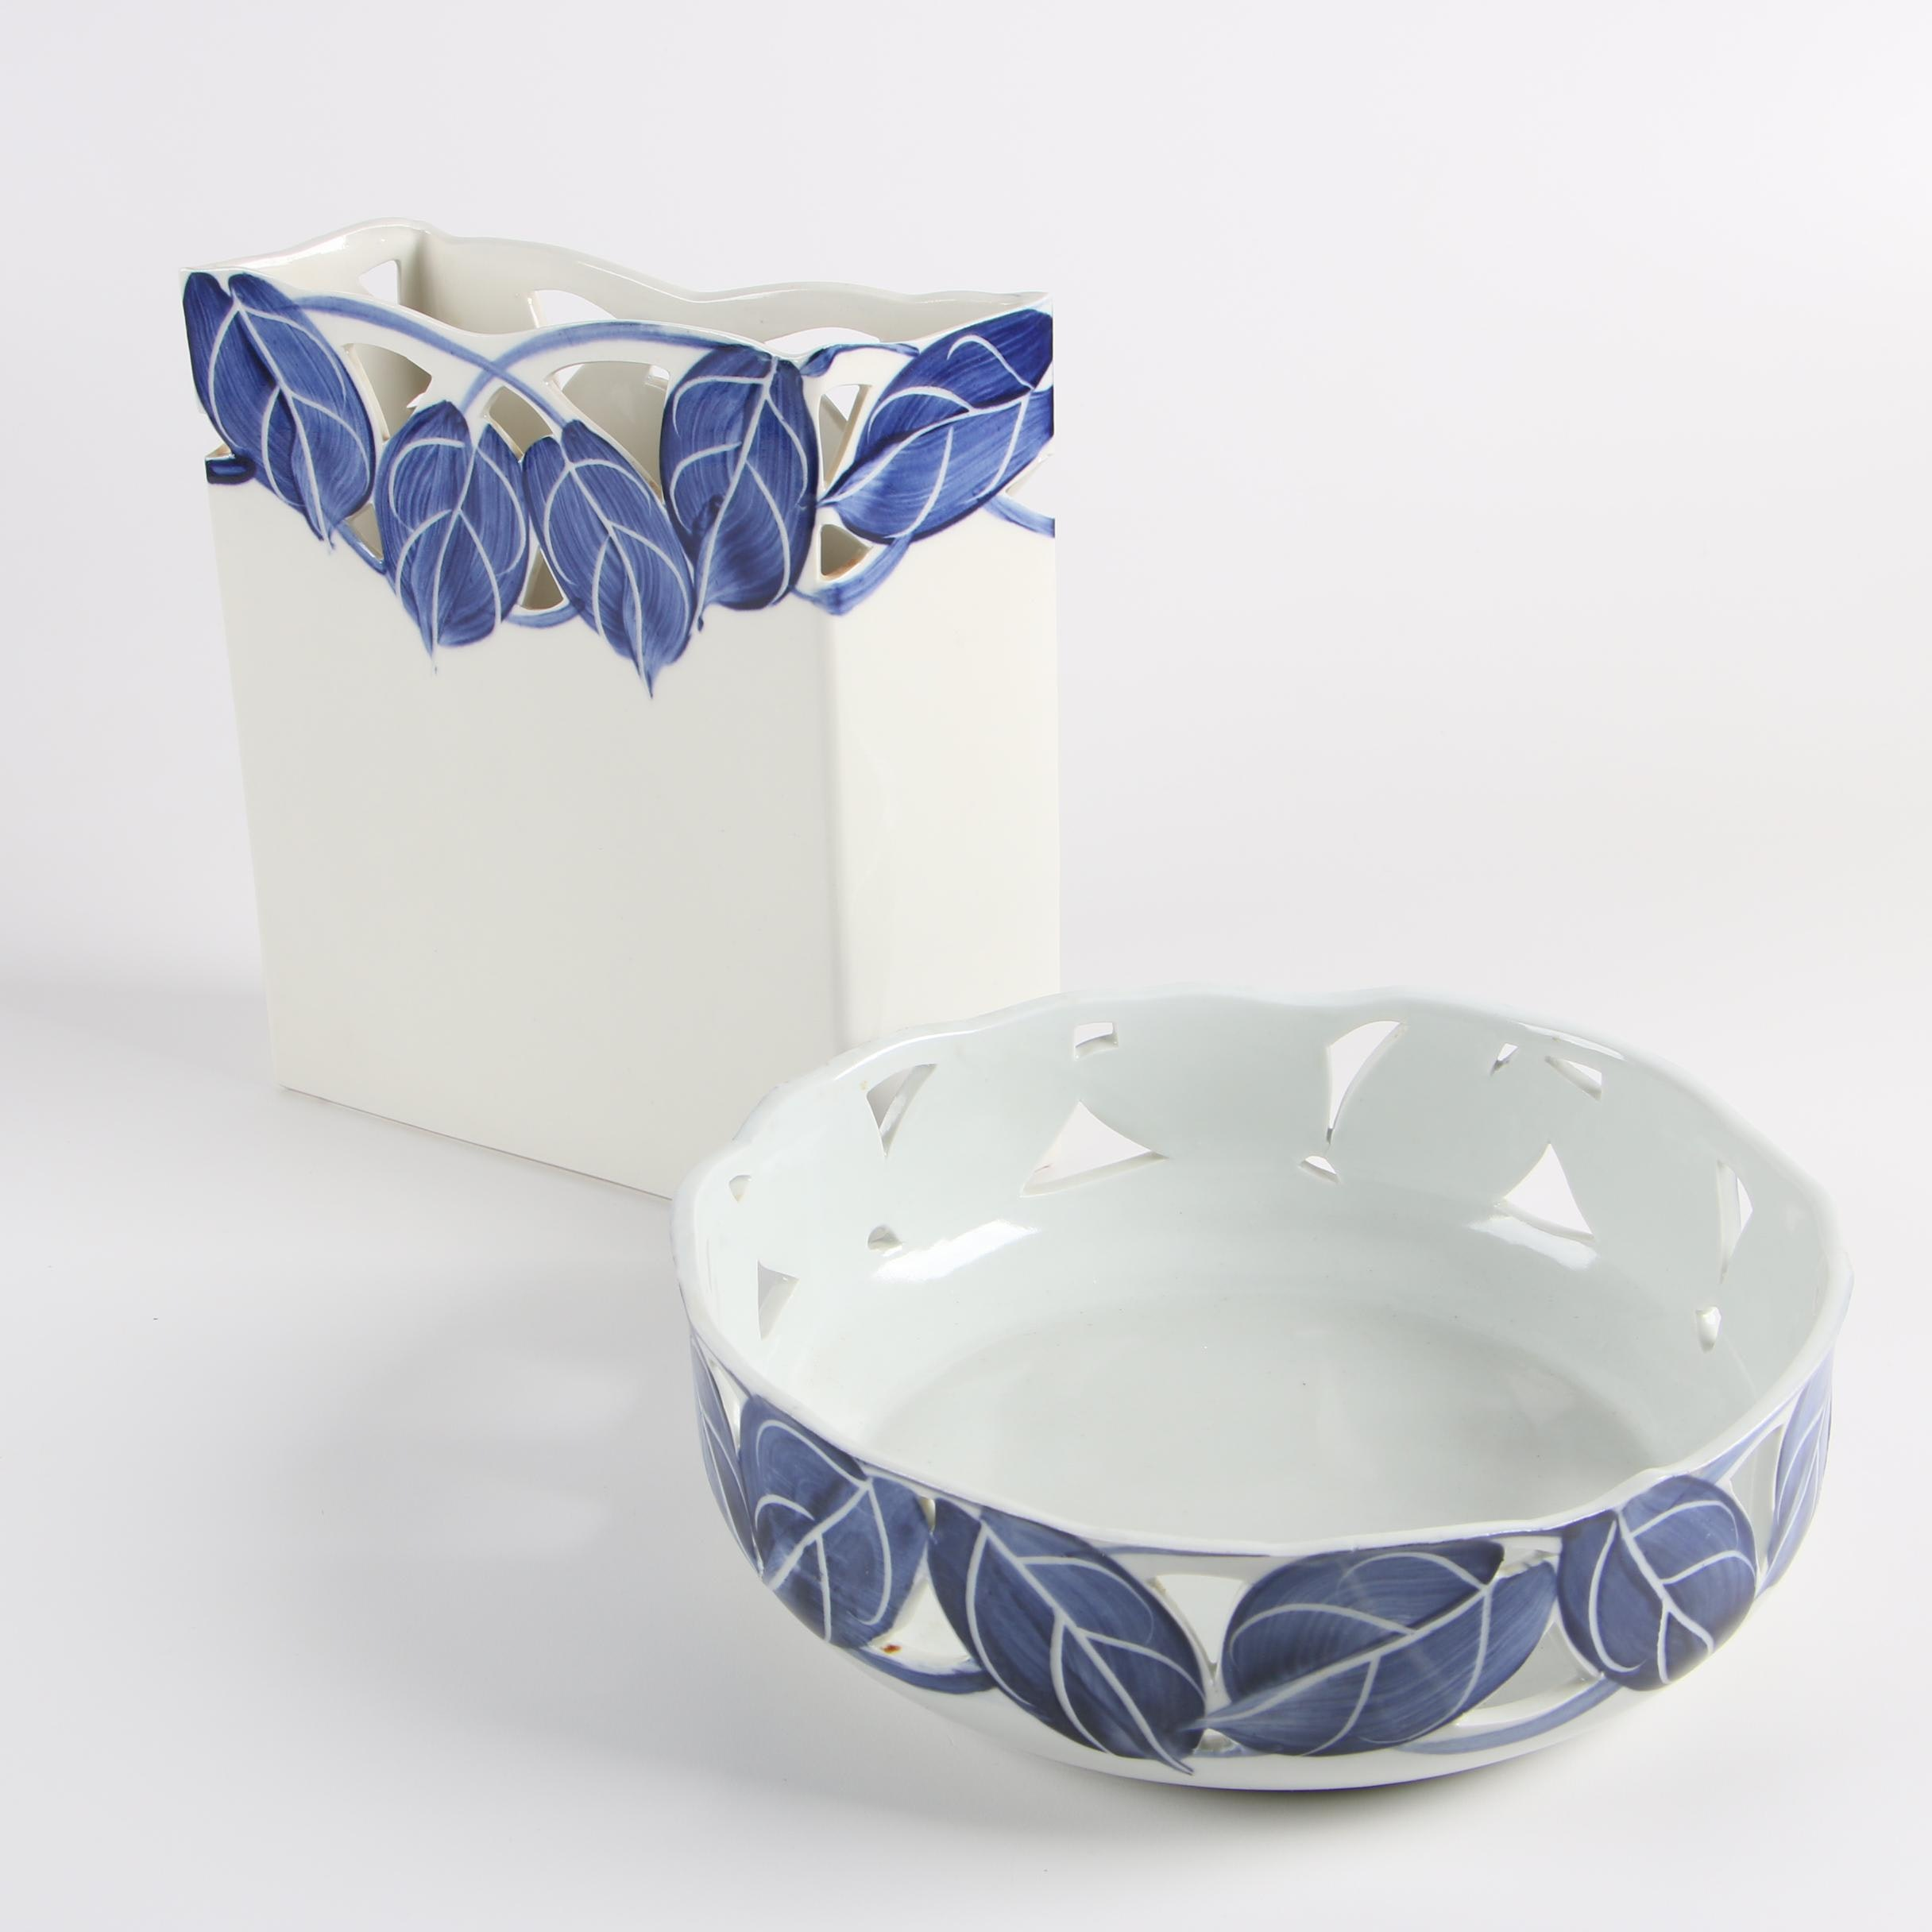 Caroline McKinney Studio Porcelain Bowl and Vase